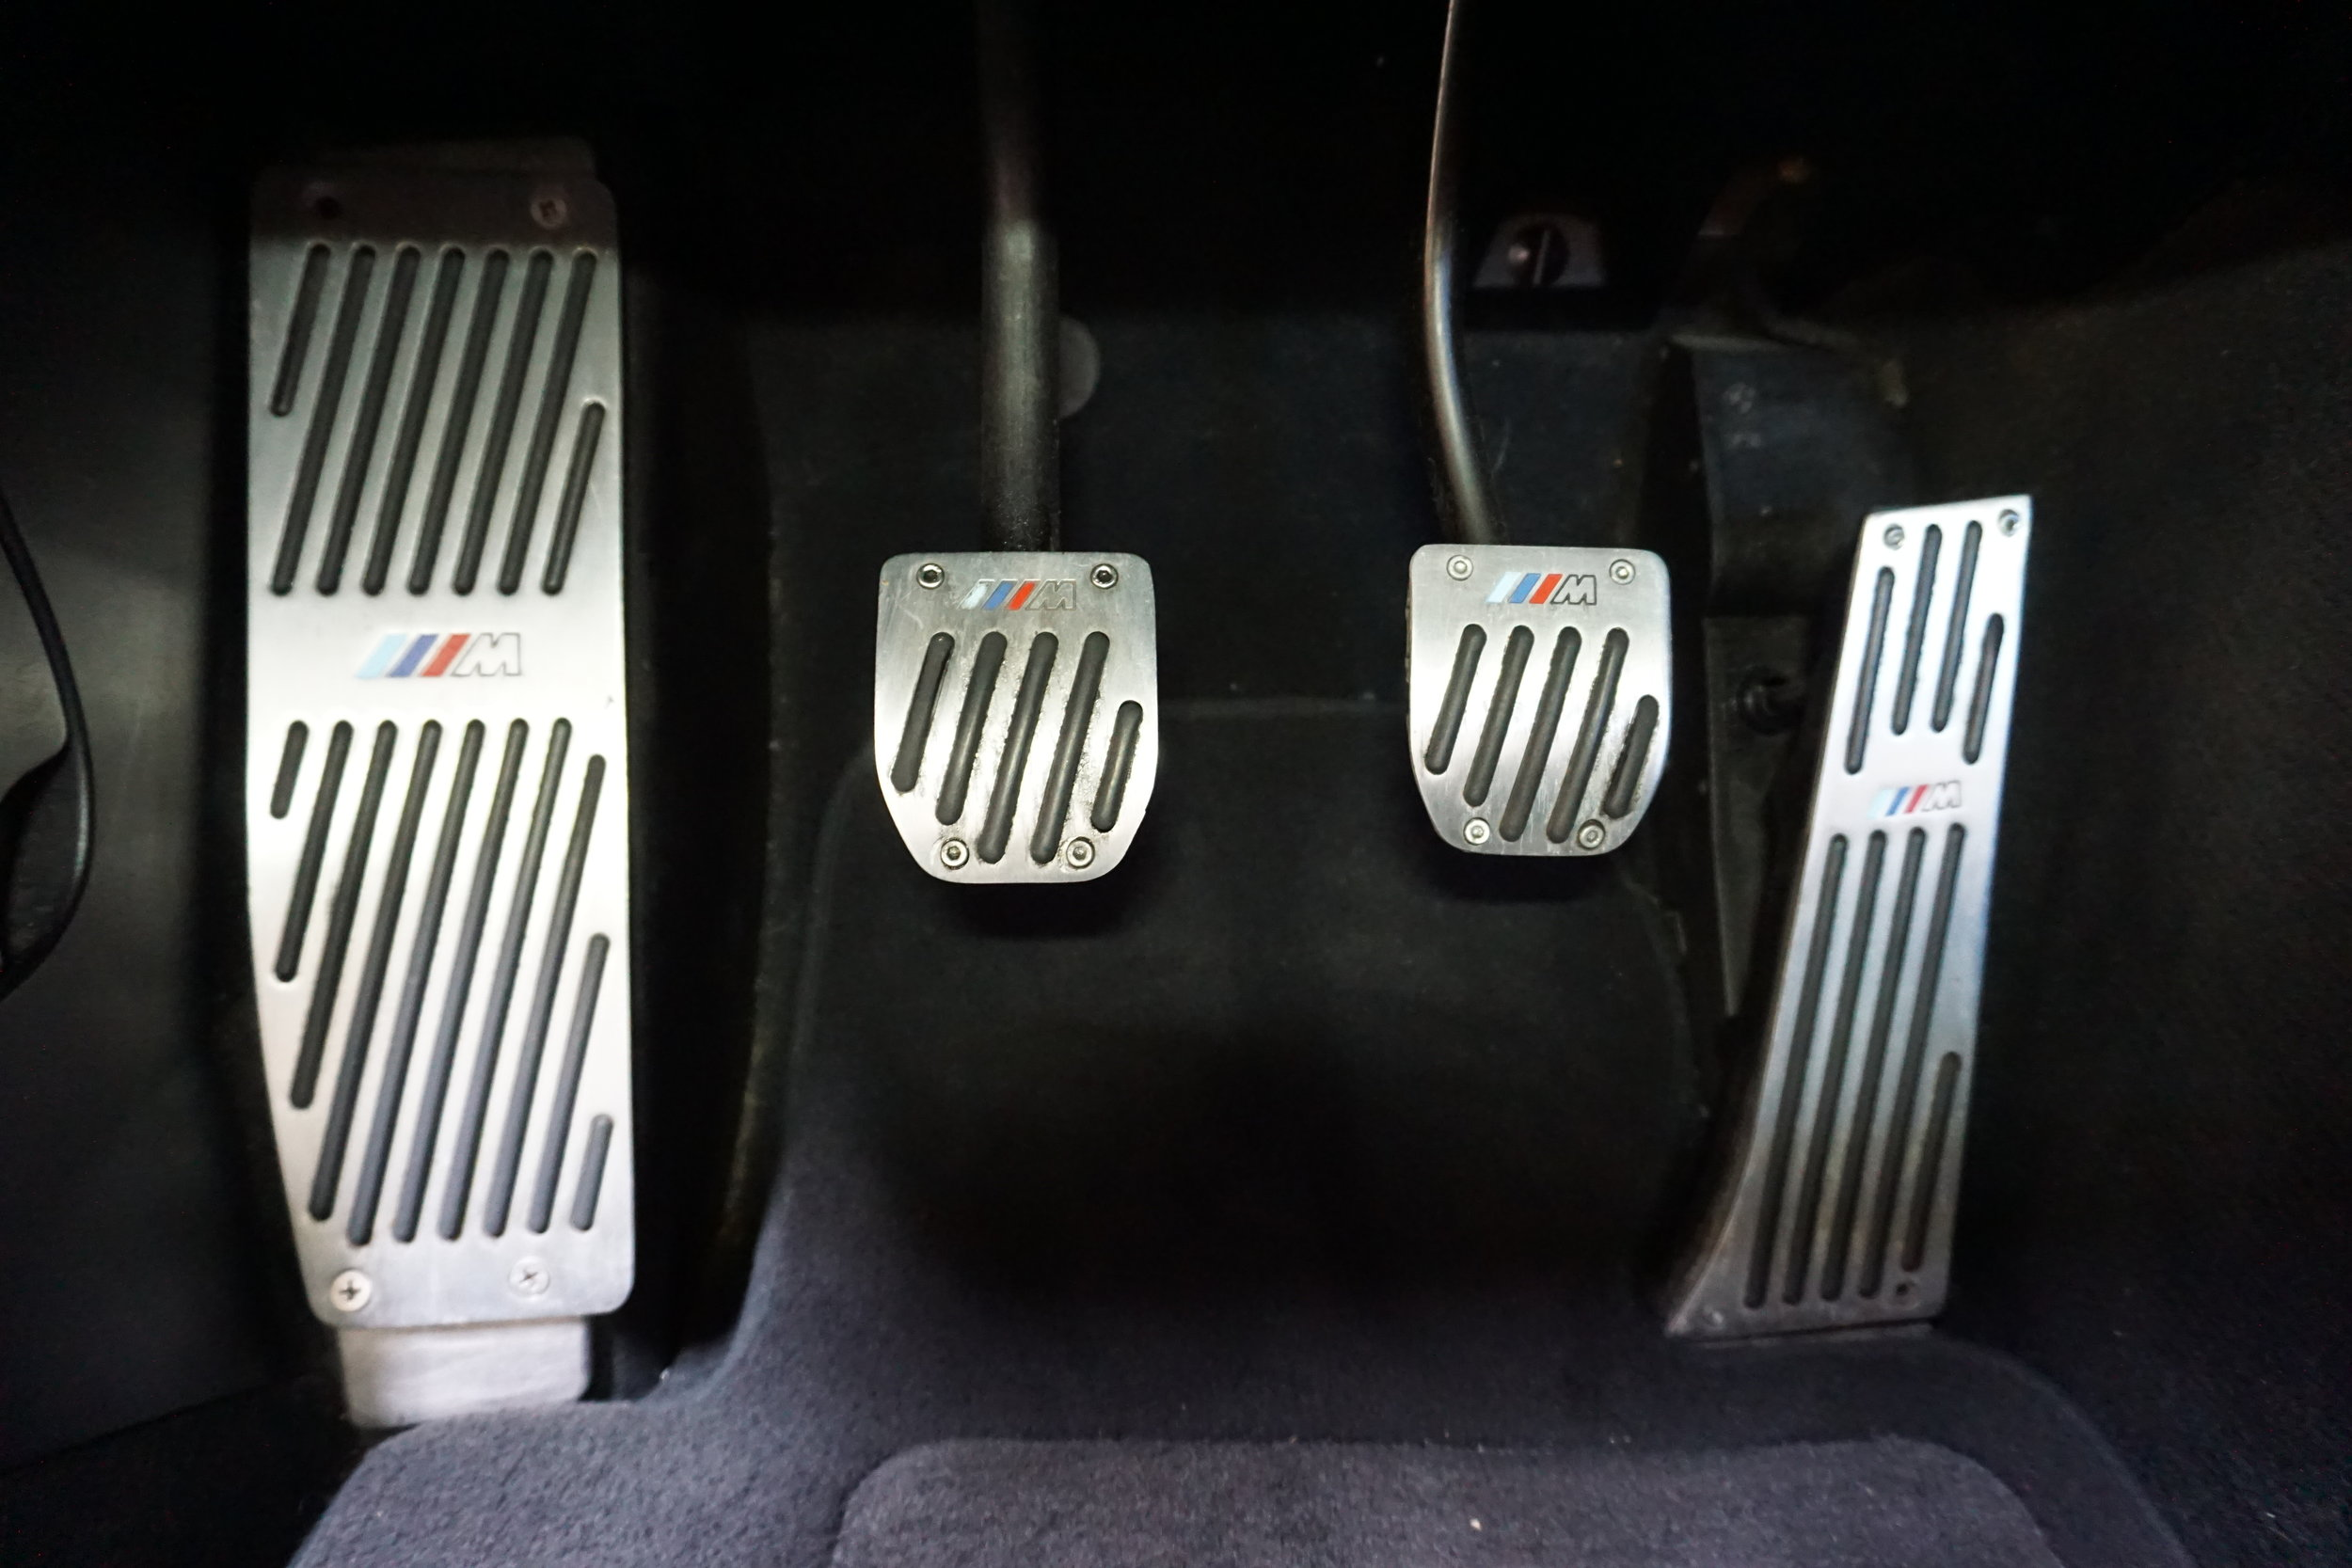 Last but not least. It's a 3 pedal M3. Yay!